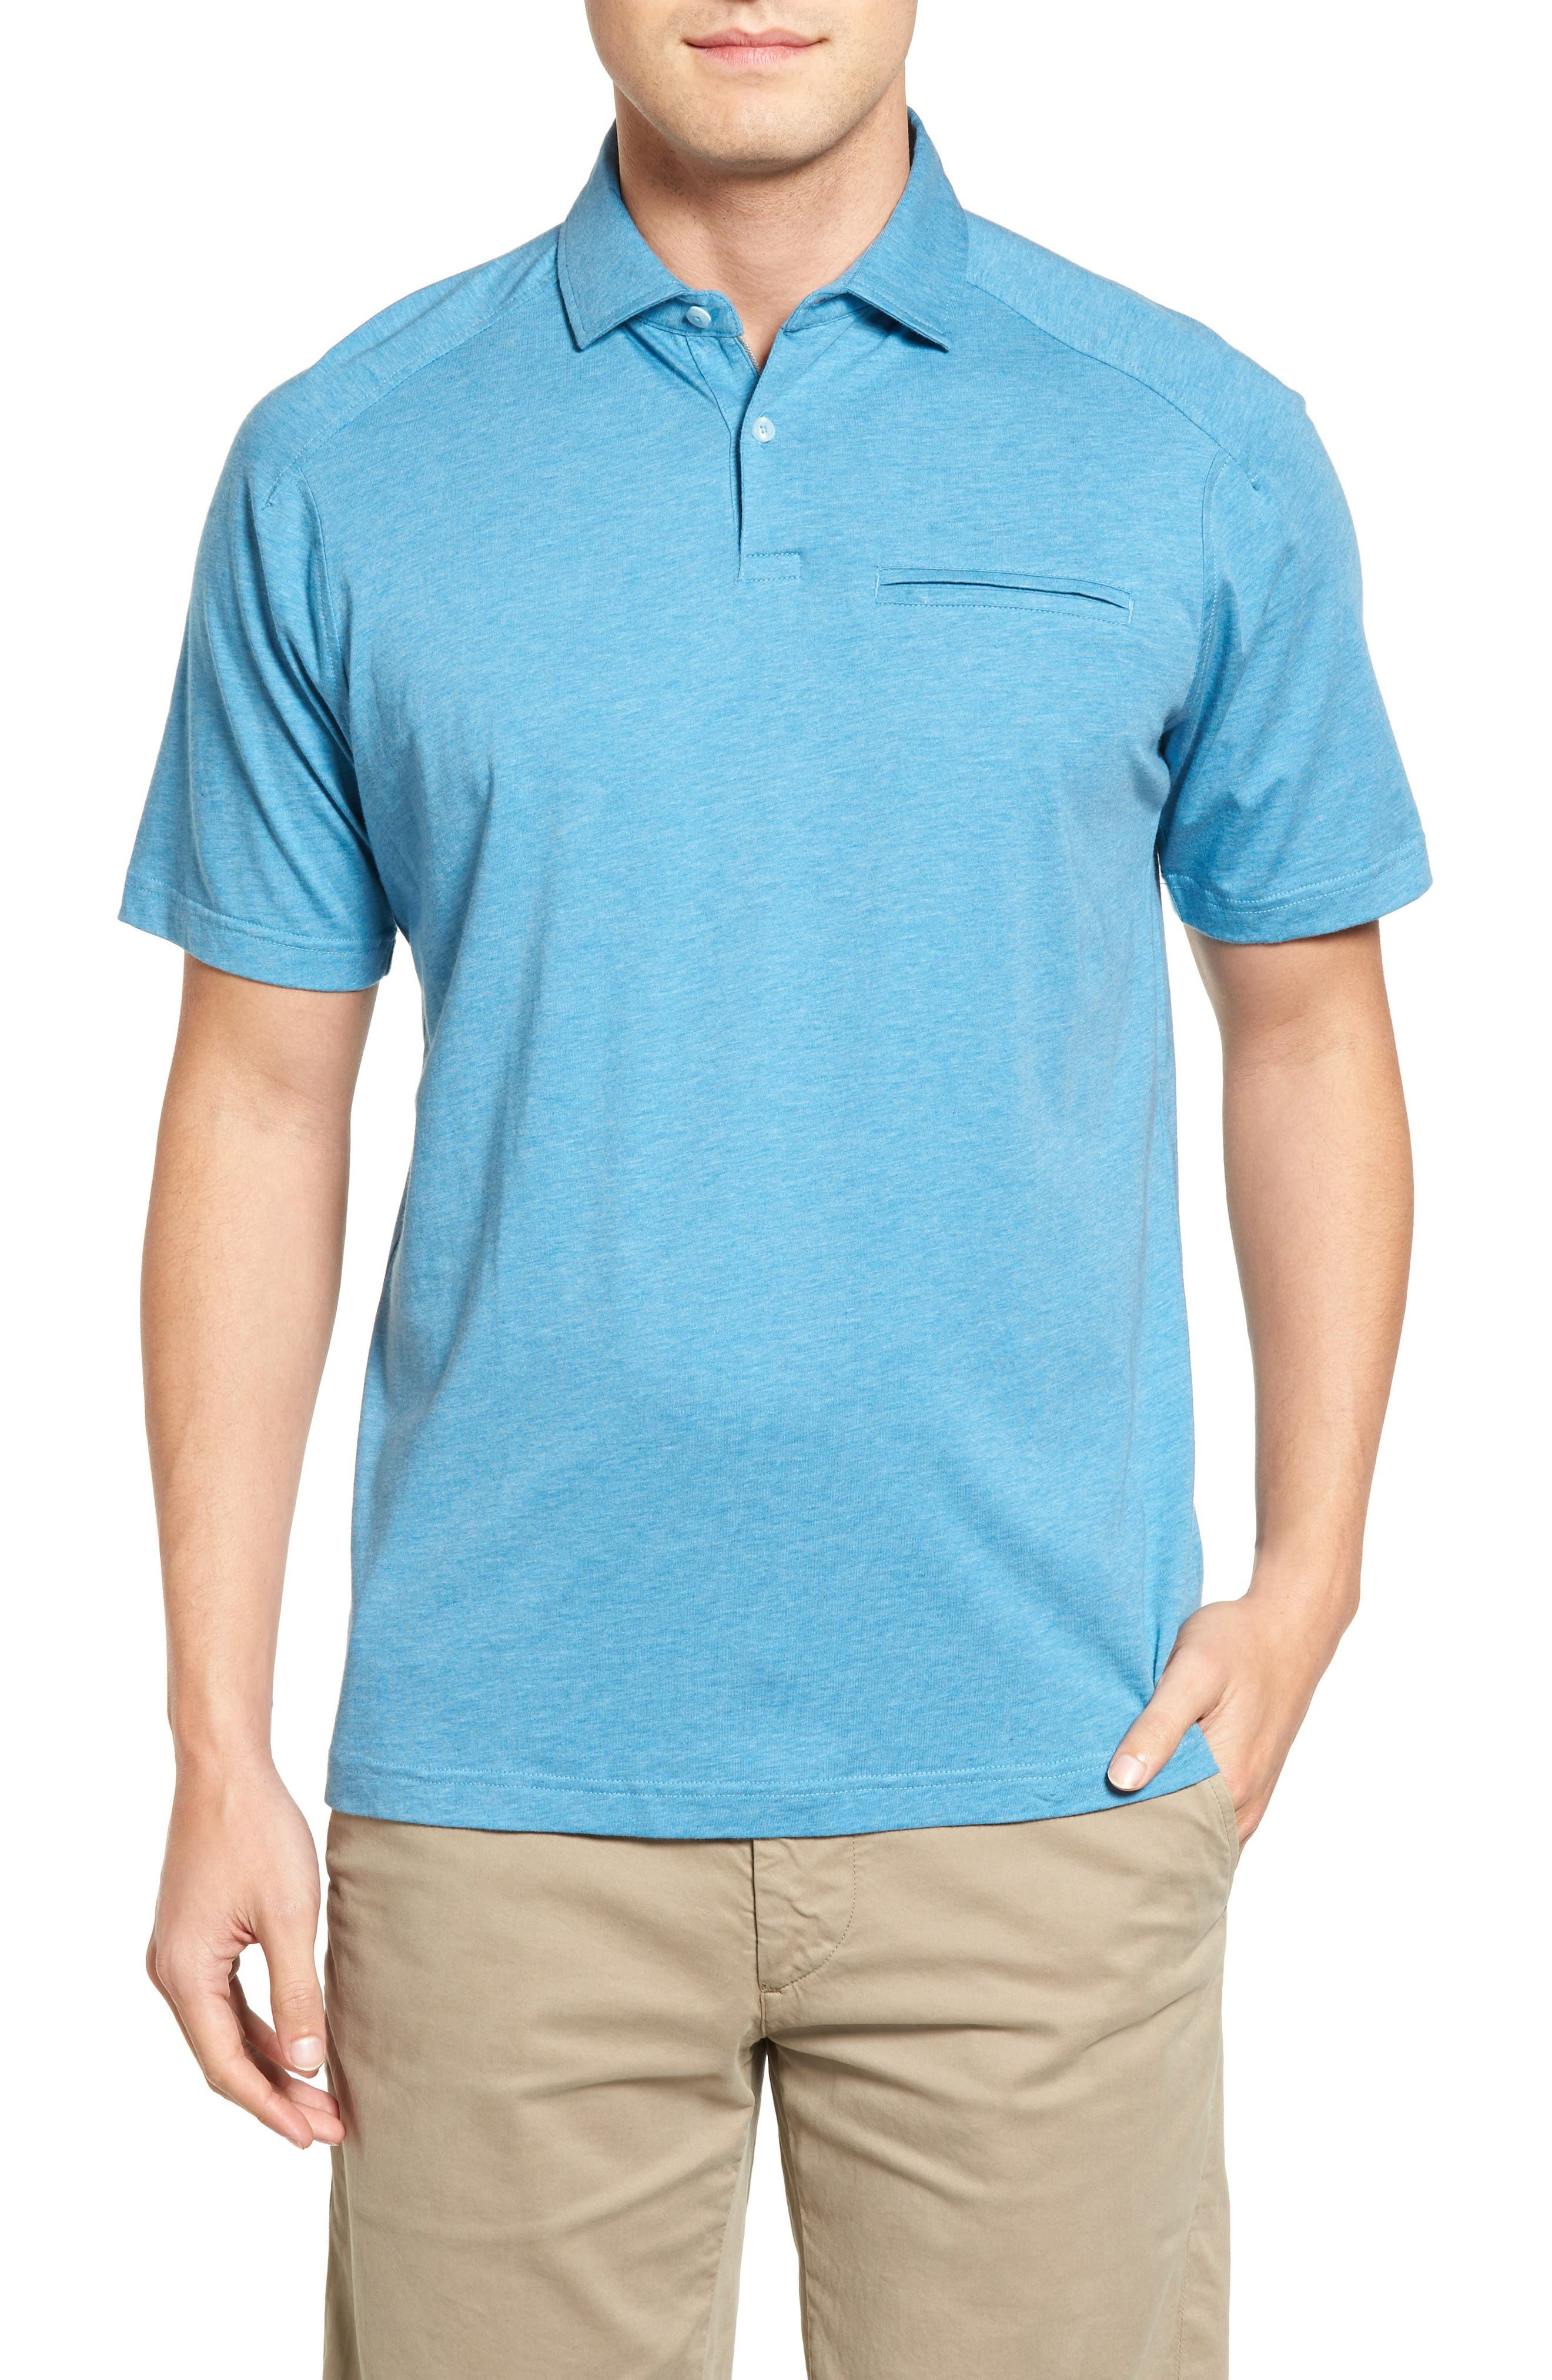 Maker & Company Featherweight Polo